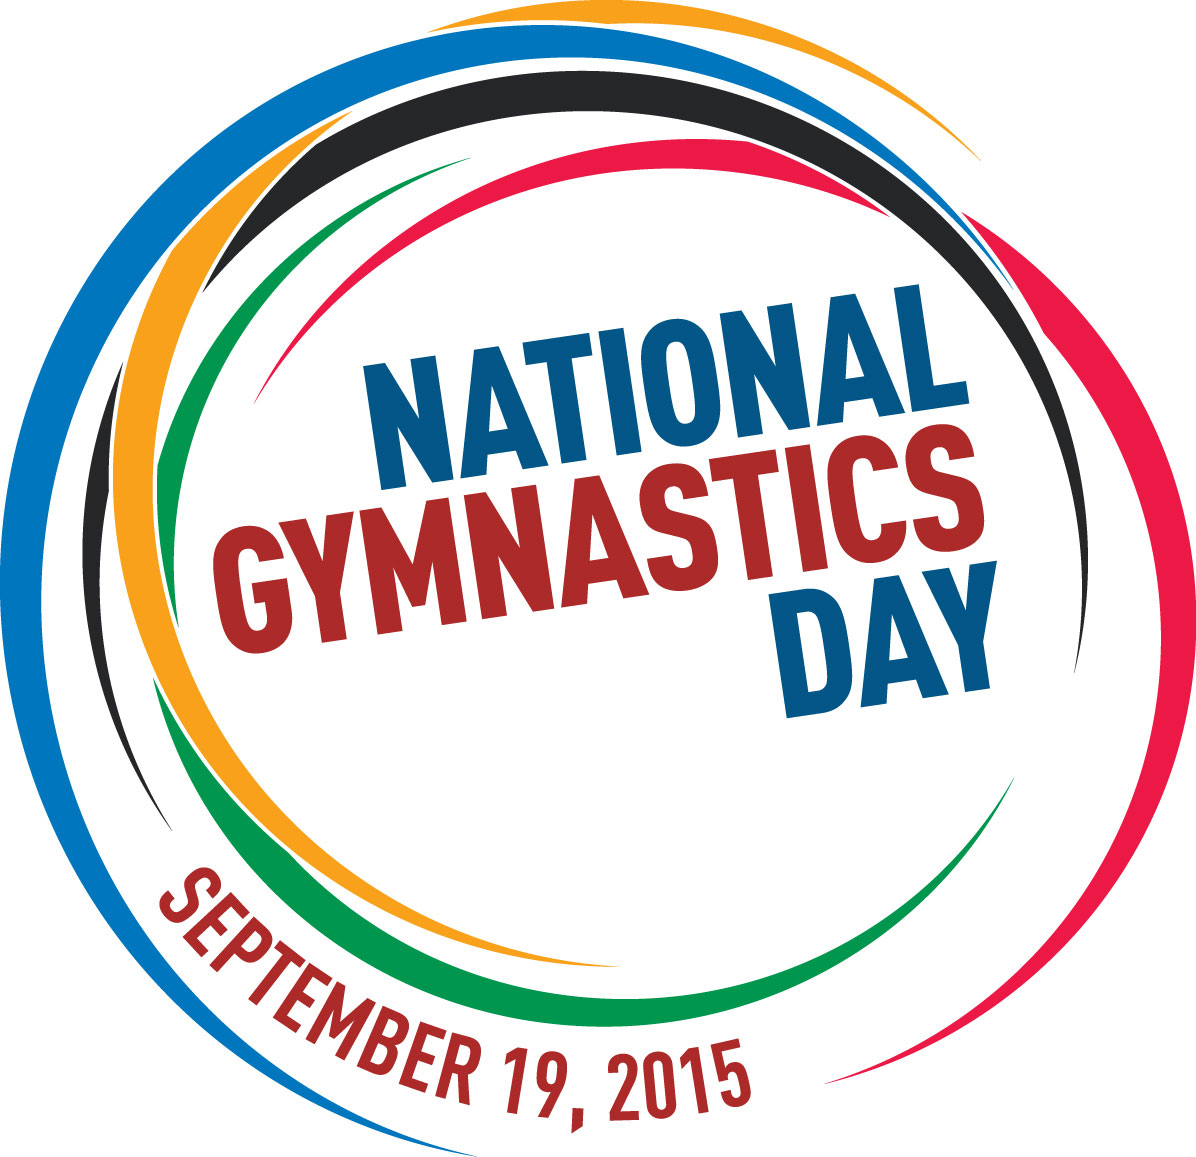 National Gymnastics Day Logo